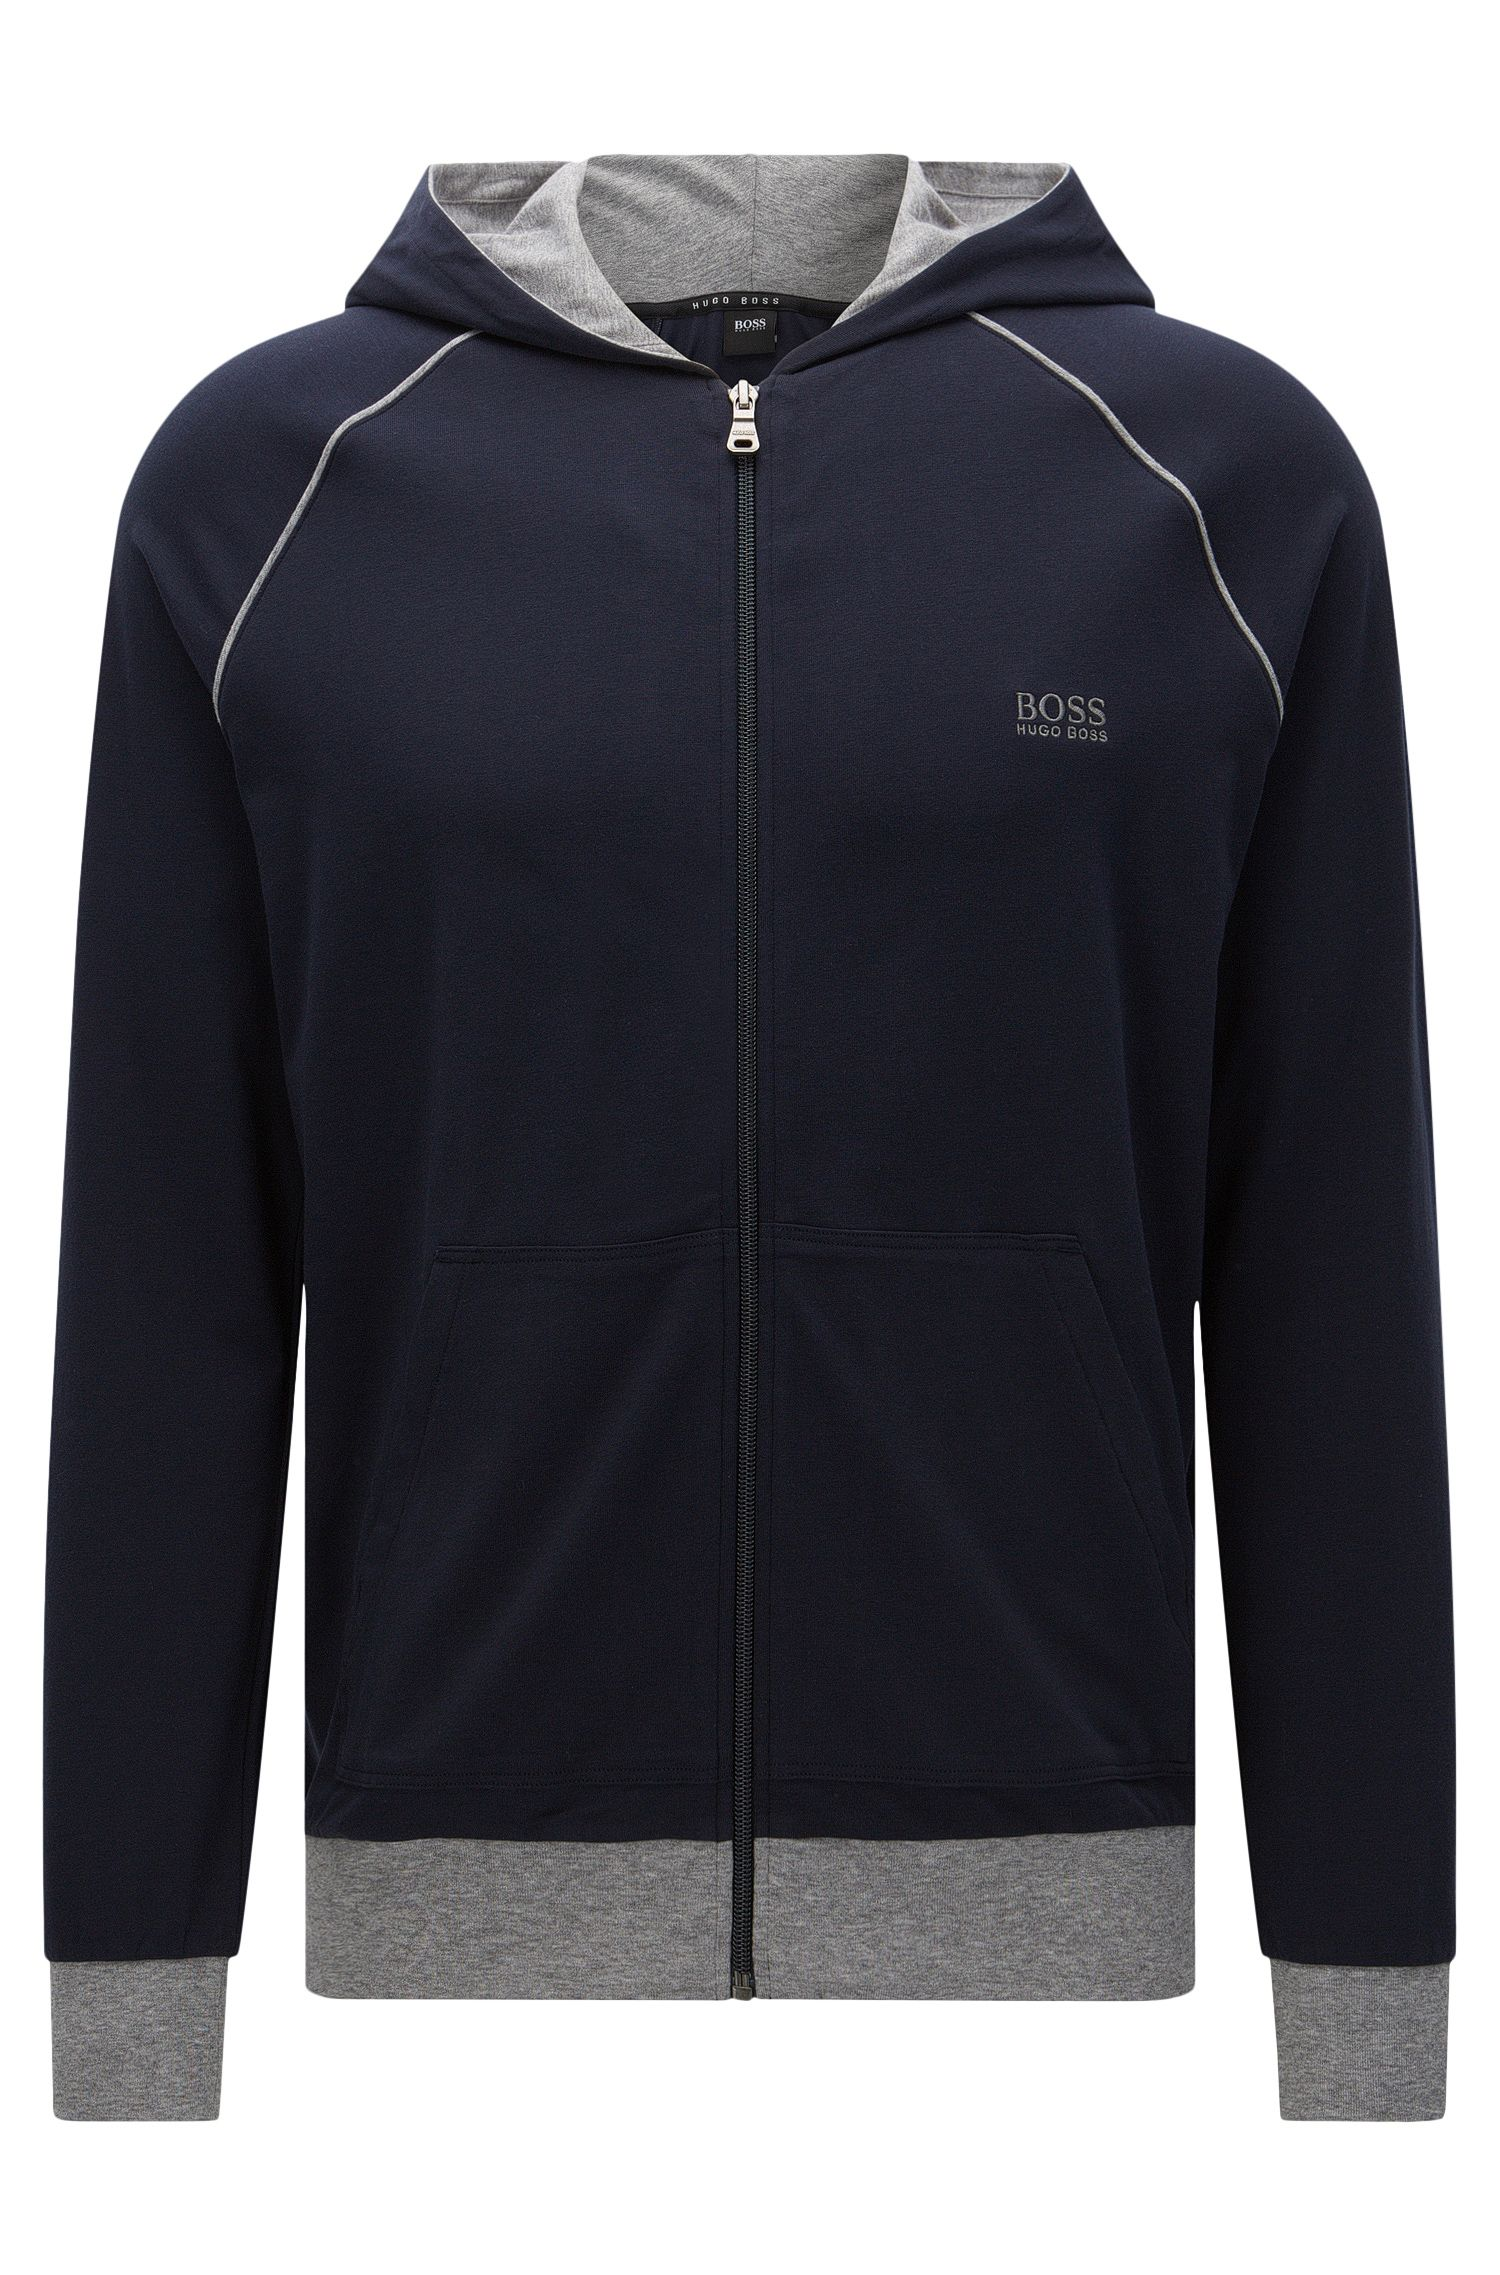 Regular-Fit Sweatshirt-Jacke aus Stretch-Baumwolle mit Kapuze: 'Jacket Hooded'